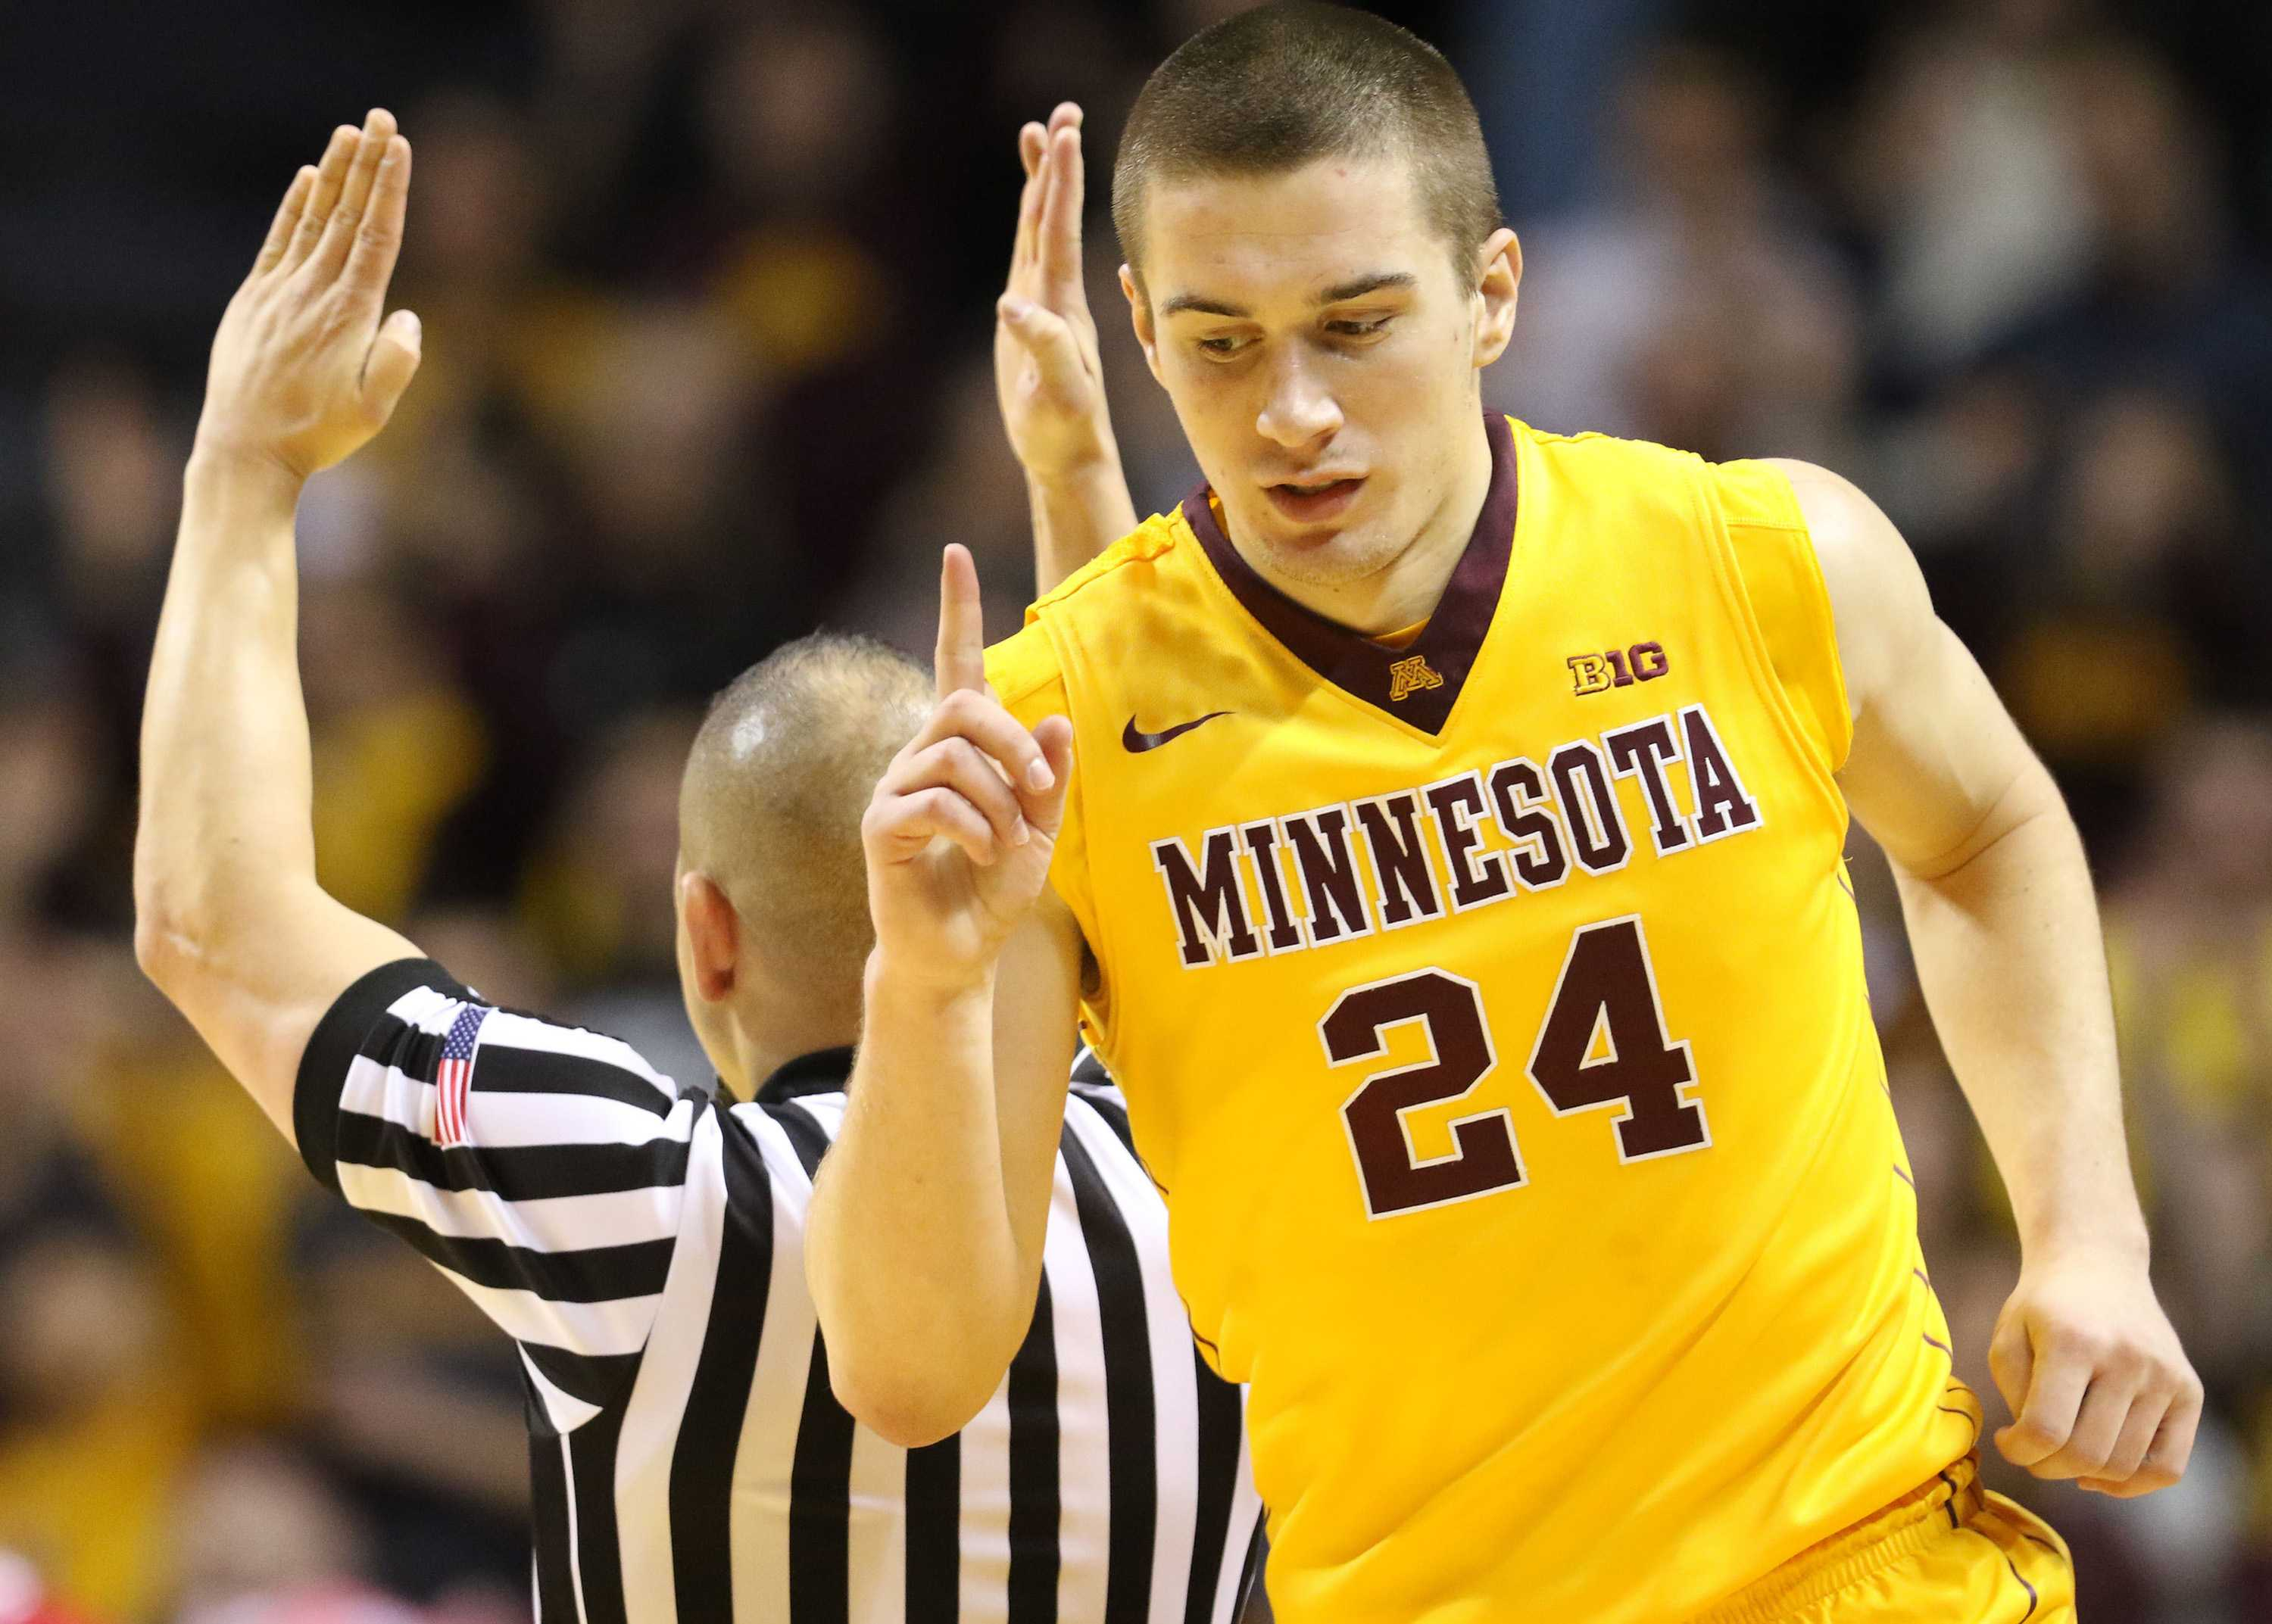 Minnesota's Joey King (24) signals after hitting a 3-point shot during the first half against Indiana on Saturday, Jan. 16, 2016, at Williams Arena in Minneapolis. Indiana won, 70-63. (David Joles/Minneapolis Star Tribune/TNS)